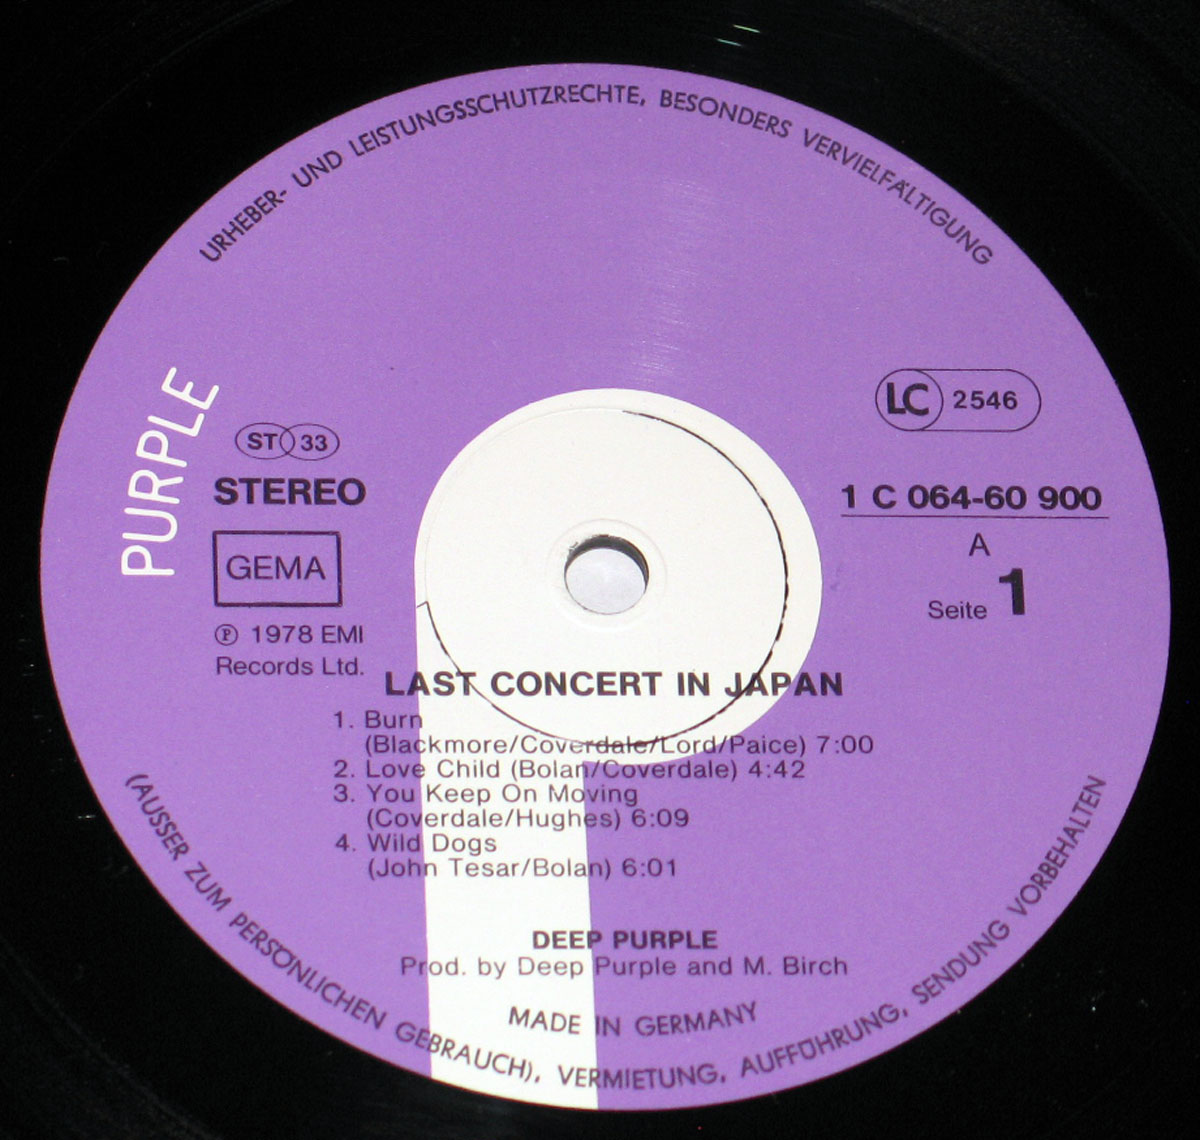 High Resolution    Photo of the record's label DEEP PURPLE Last Concert in Japan